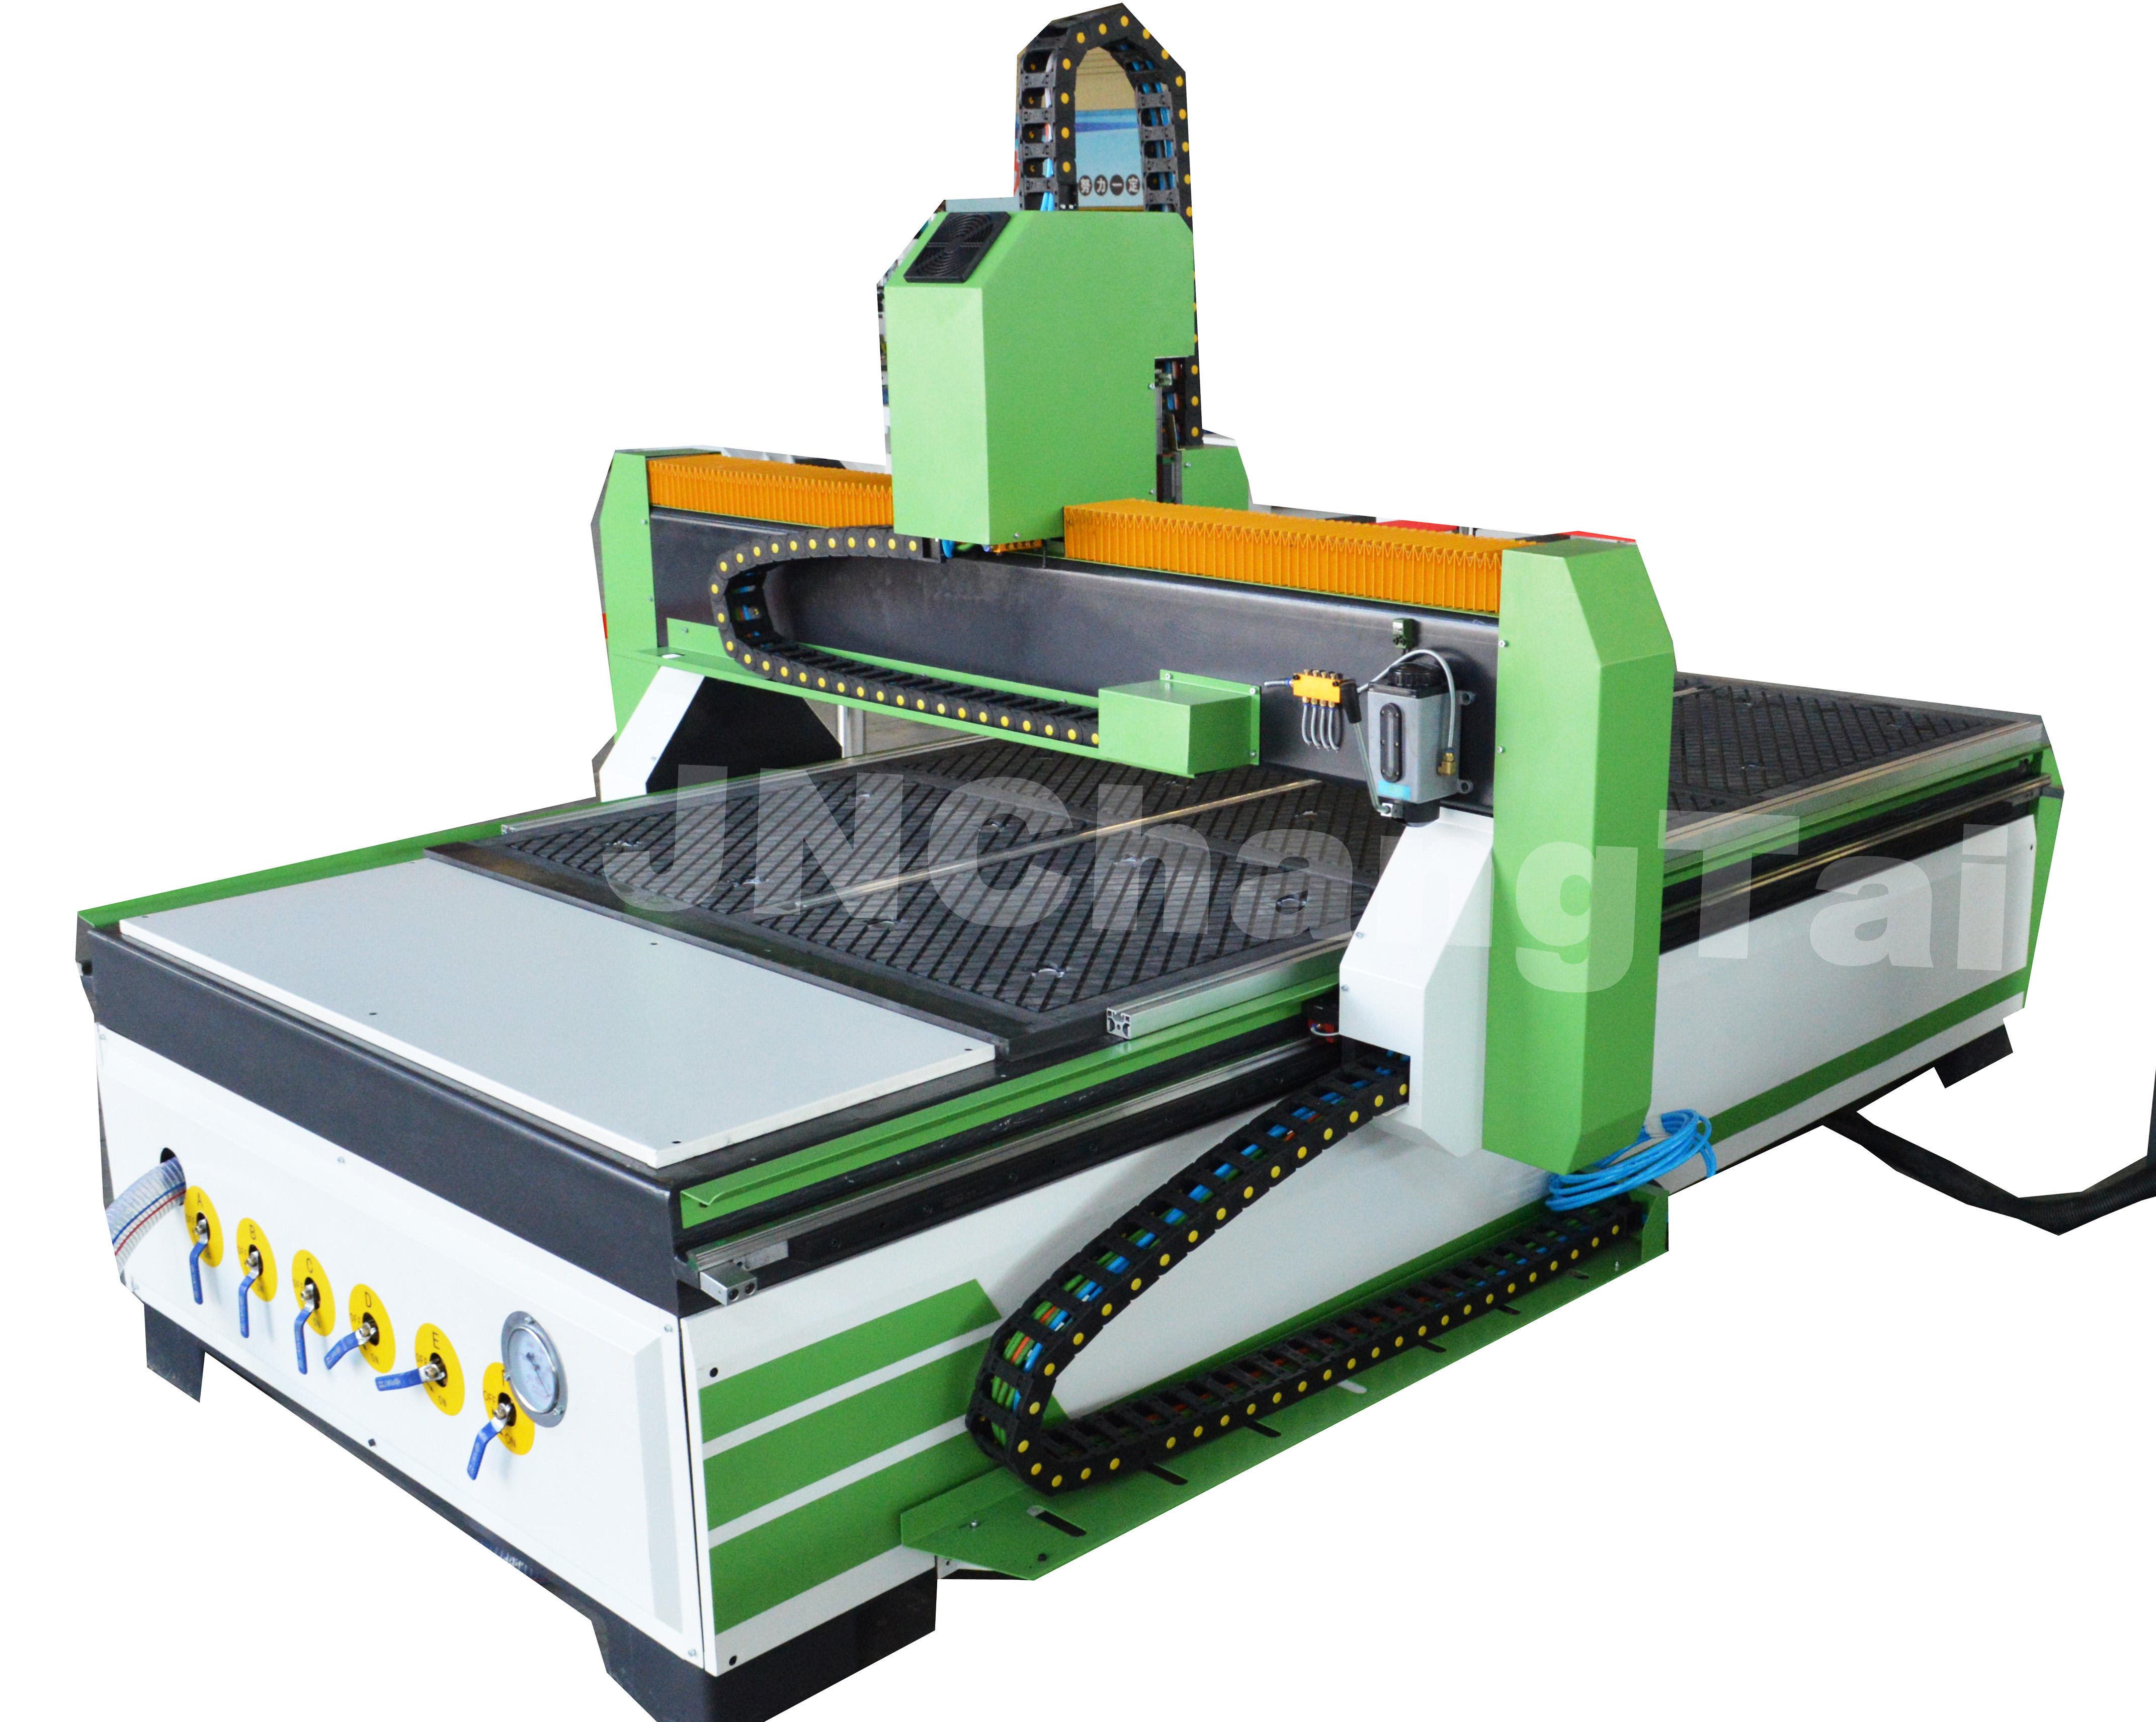 Holz cnc router für holz, sperrholz, MDF, acryl 1325 holz CNC router maschine